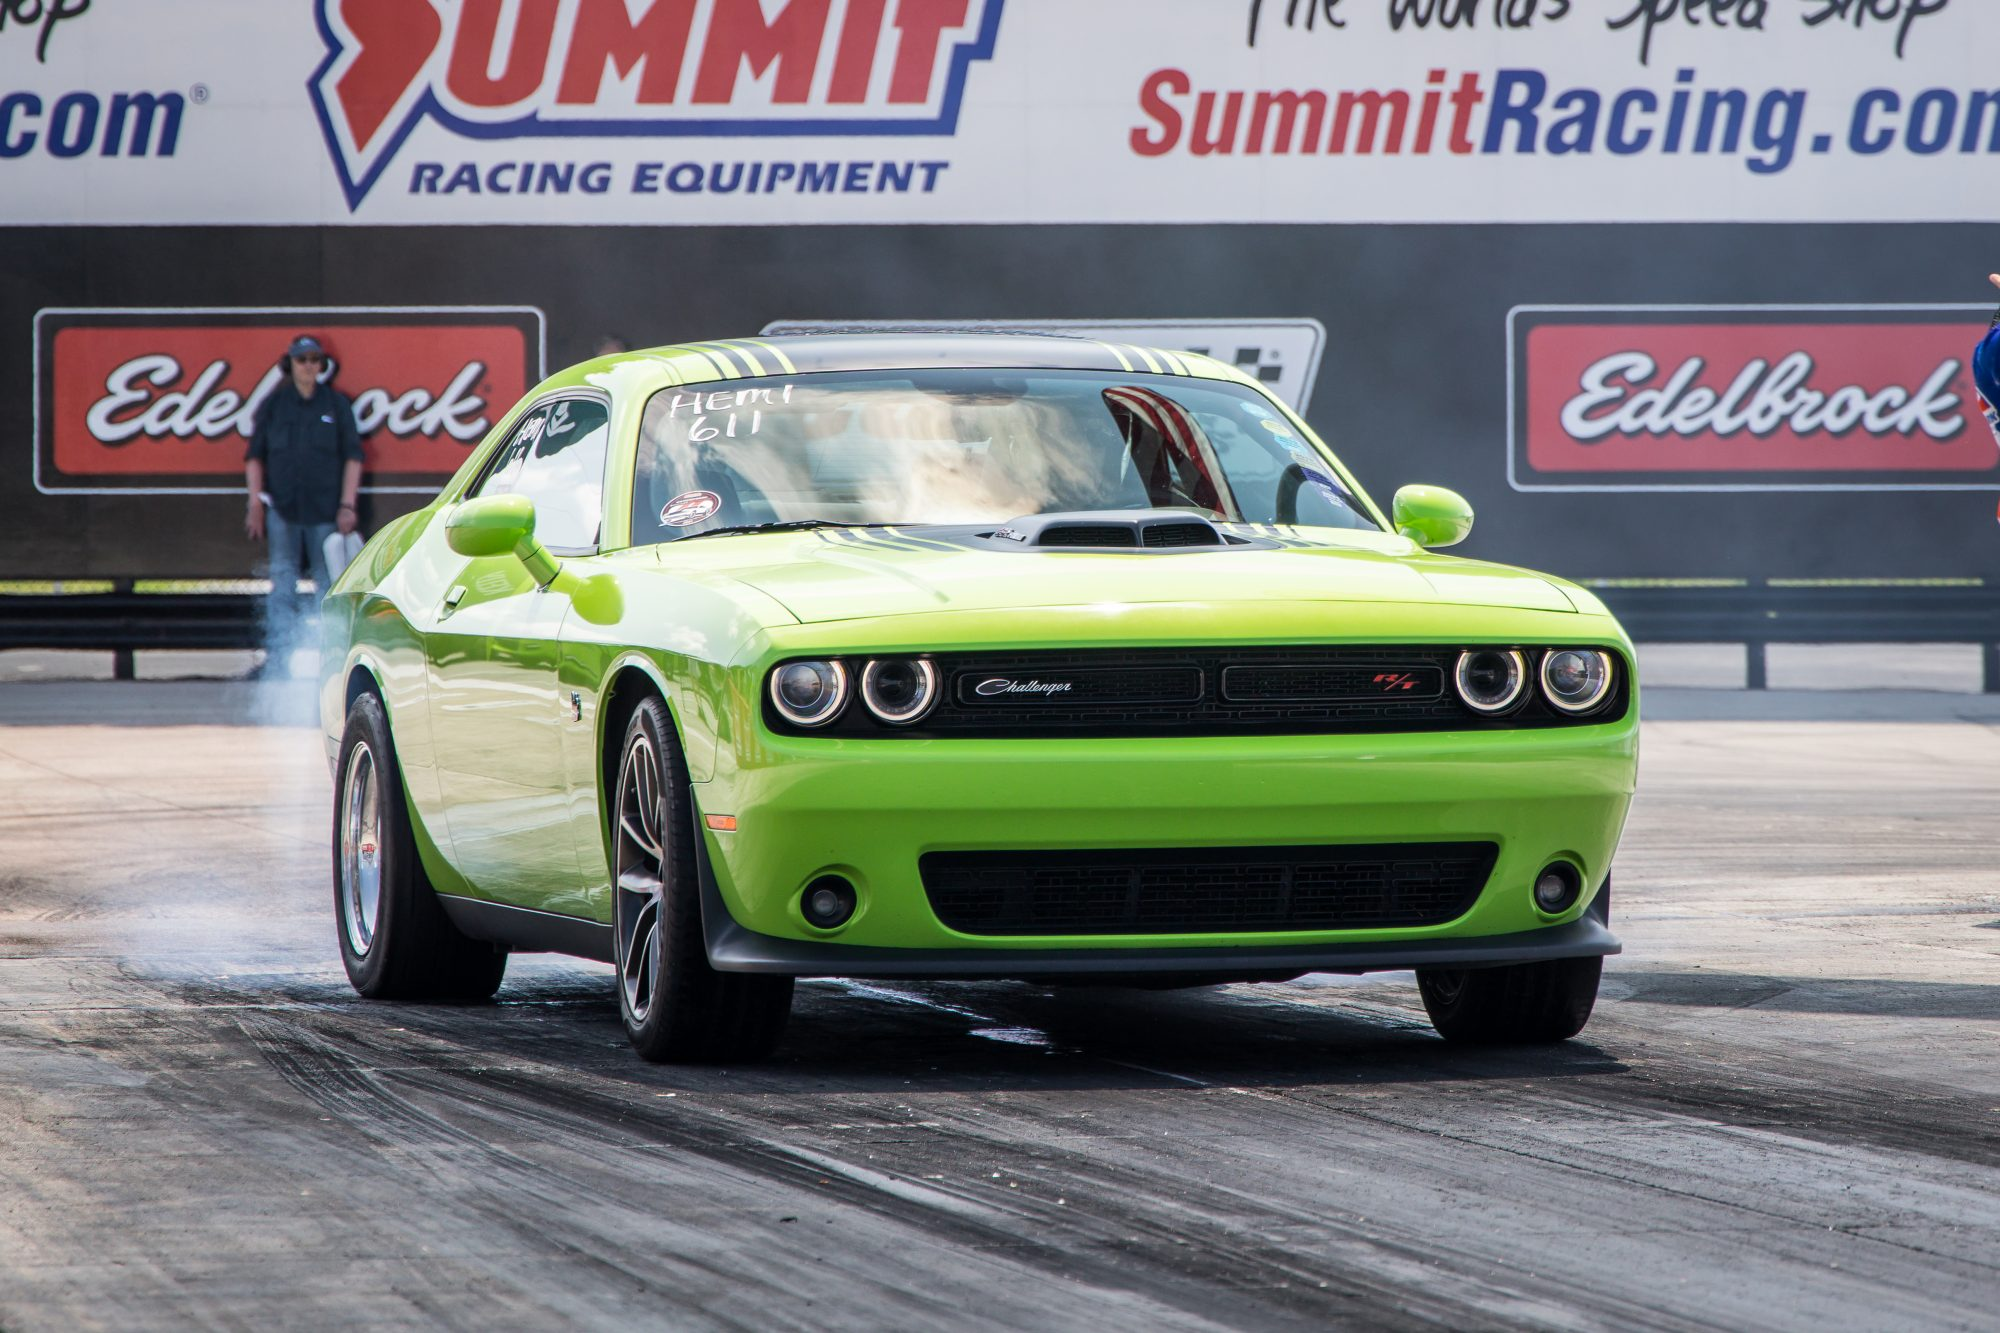 Challenger doing a burnout prior to drag racing